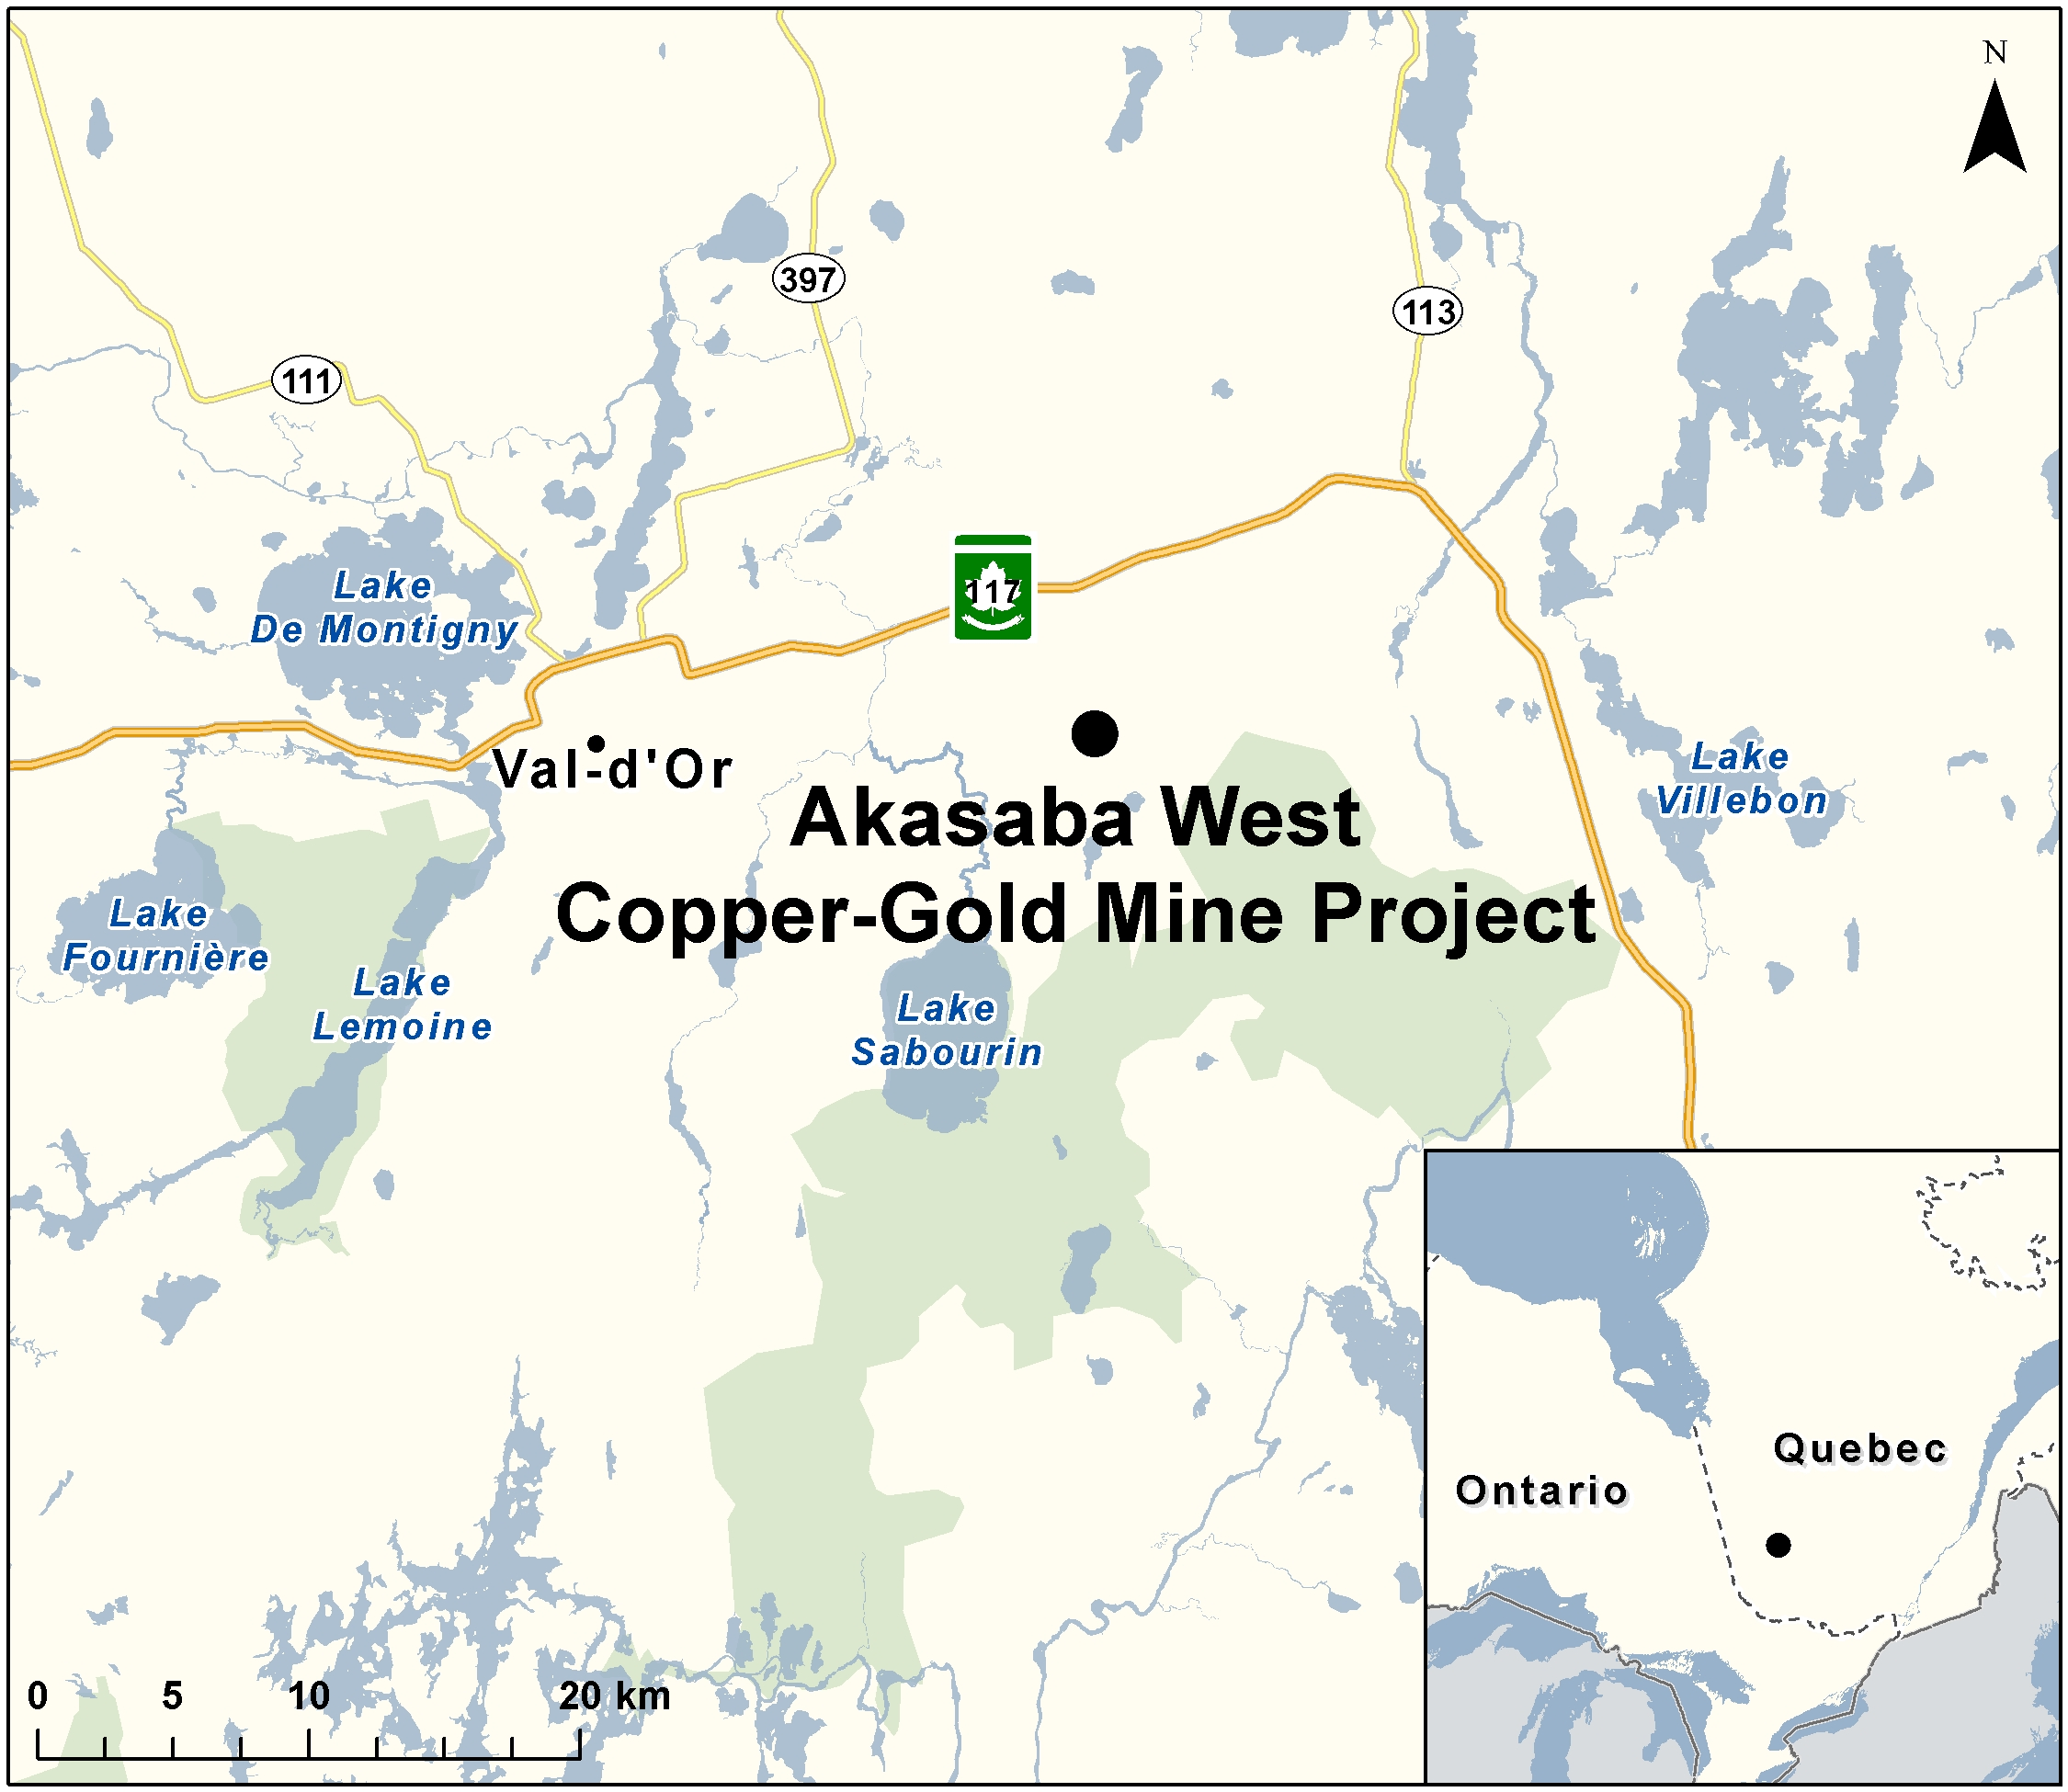 Akasaba West Copper-Gold Mine Project- Canada.ca